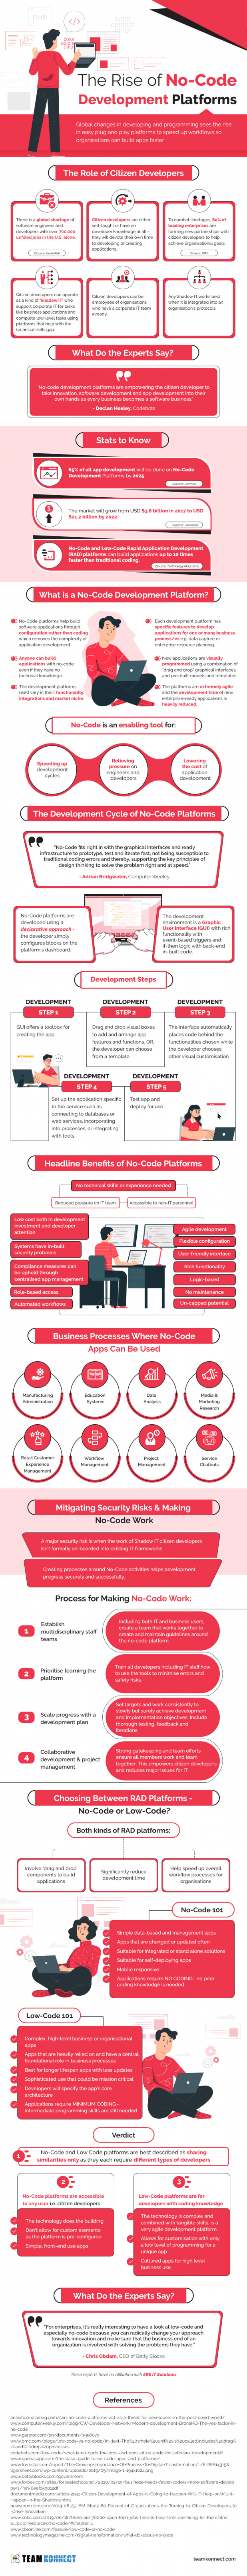 No-Code Platforms: Software Development Benefits You Need to Know [Infographic]